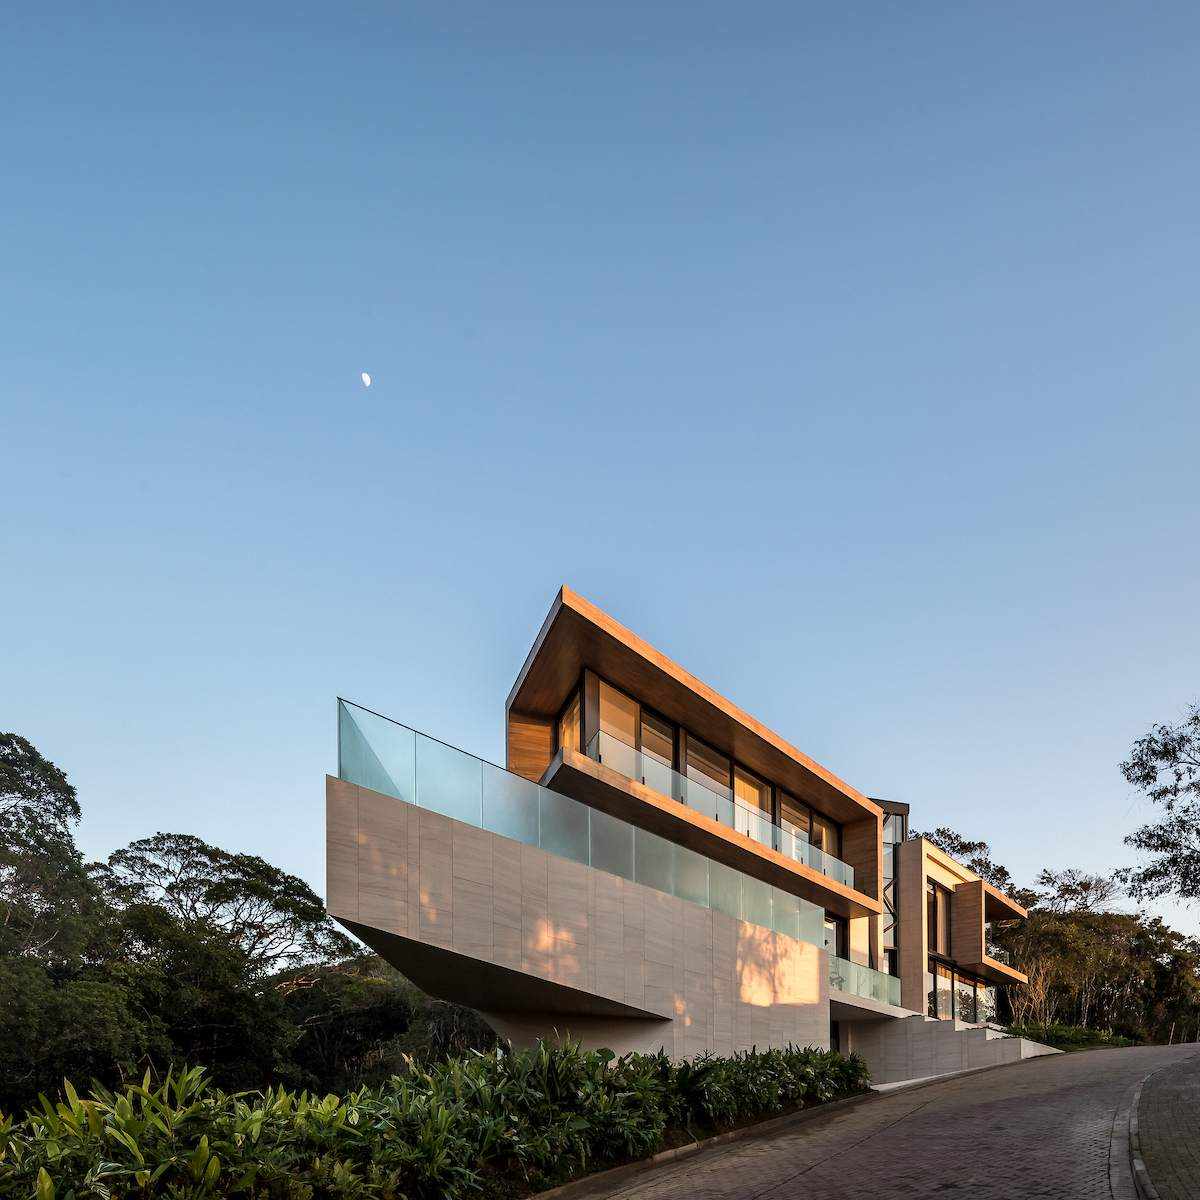 The house is built on a sloping site and the design takes advantage of that